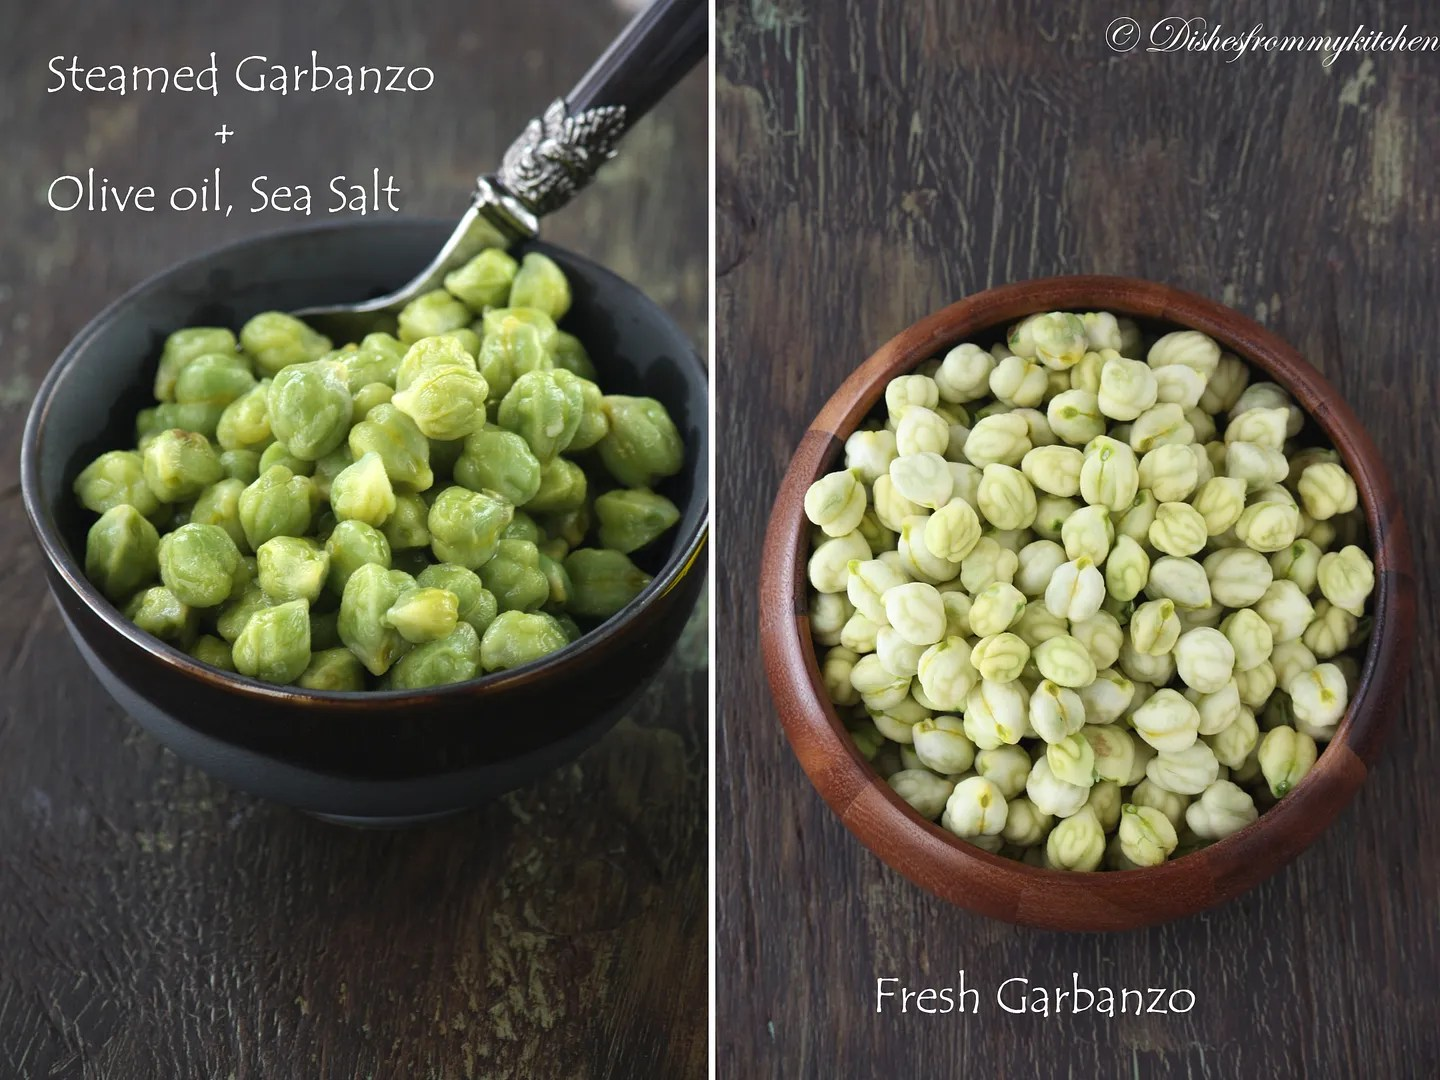 Dishesfrommykitchen HOW TO COOK FRESH GARBANZOCHICKPEA